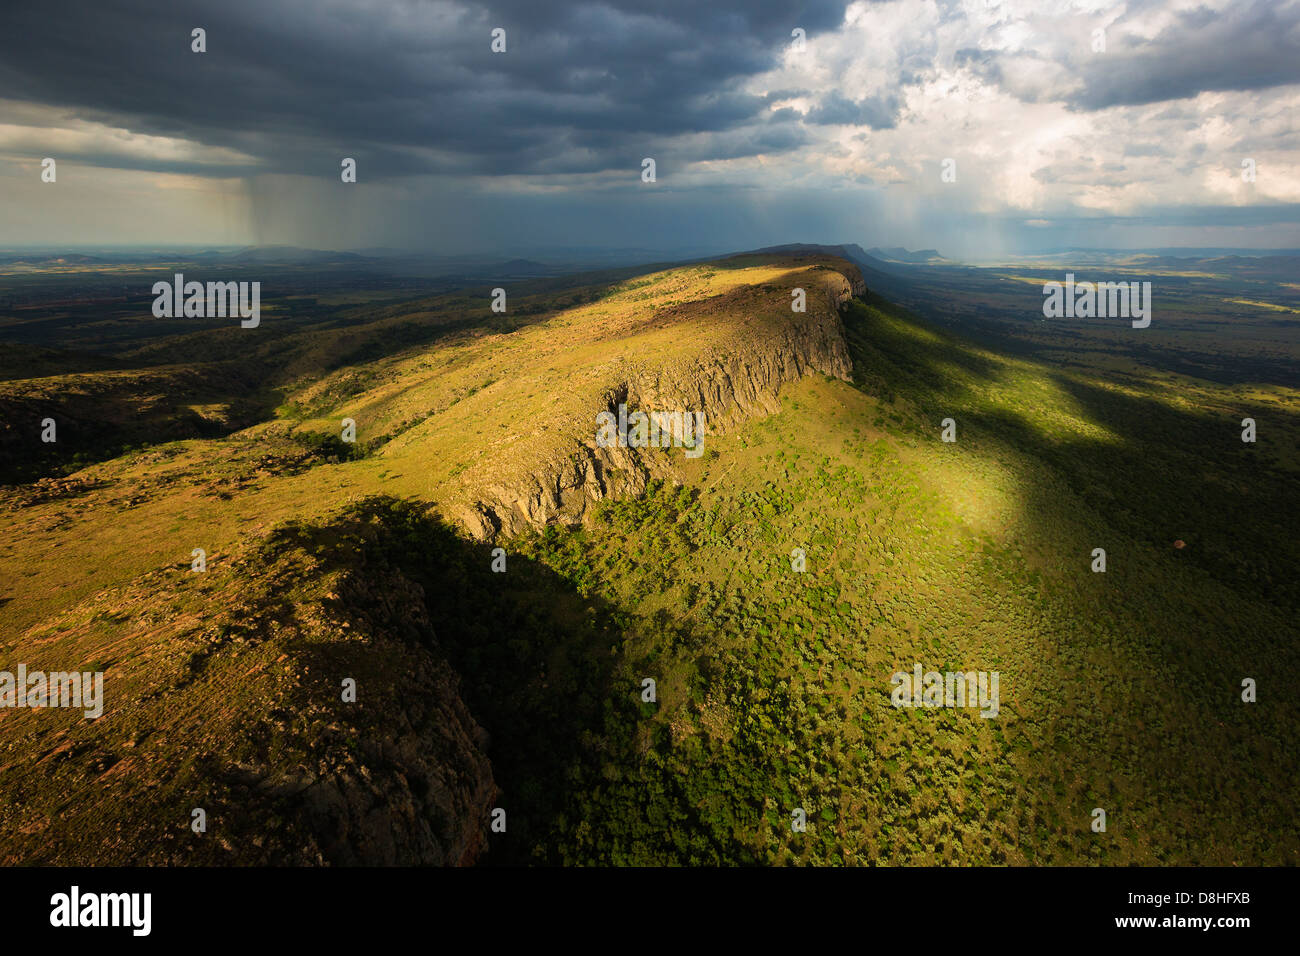 Aerial view of the Magaliesburg mountains. - Stock Image